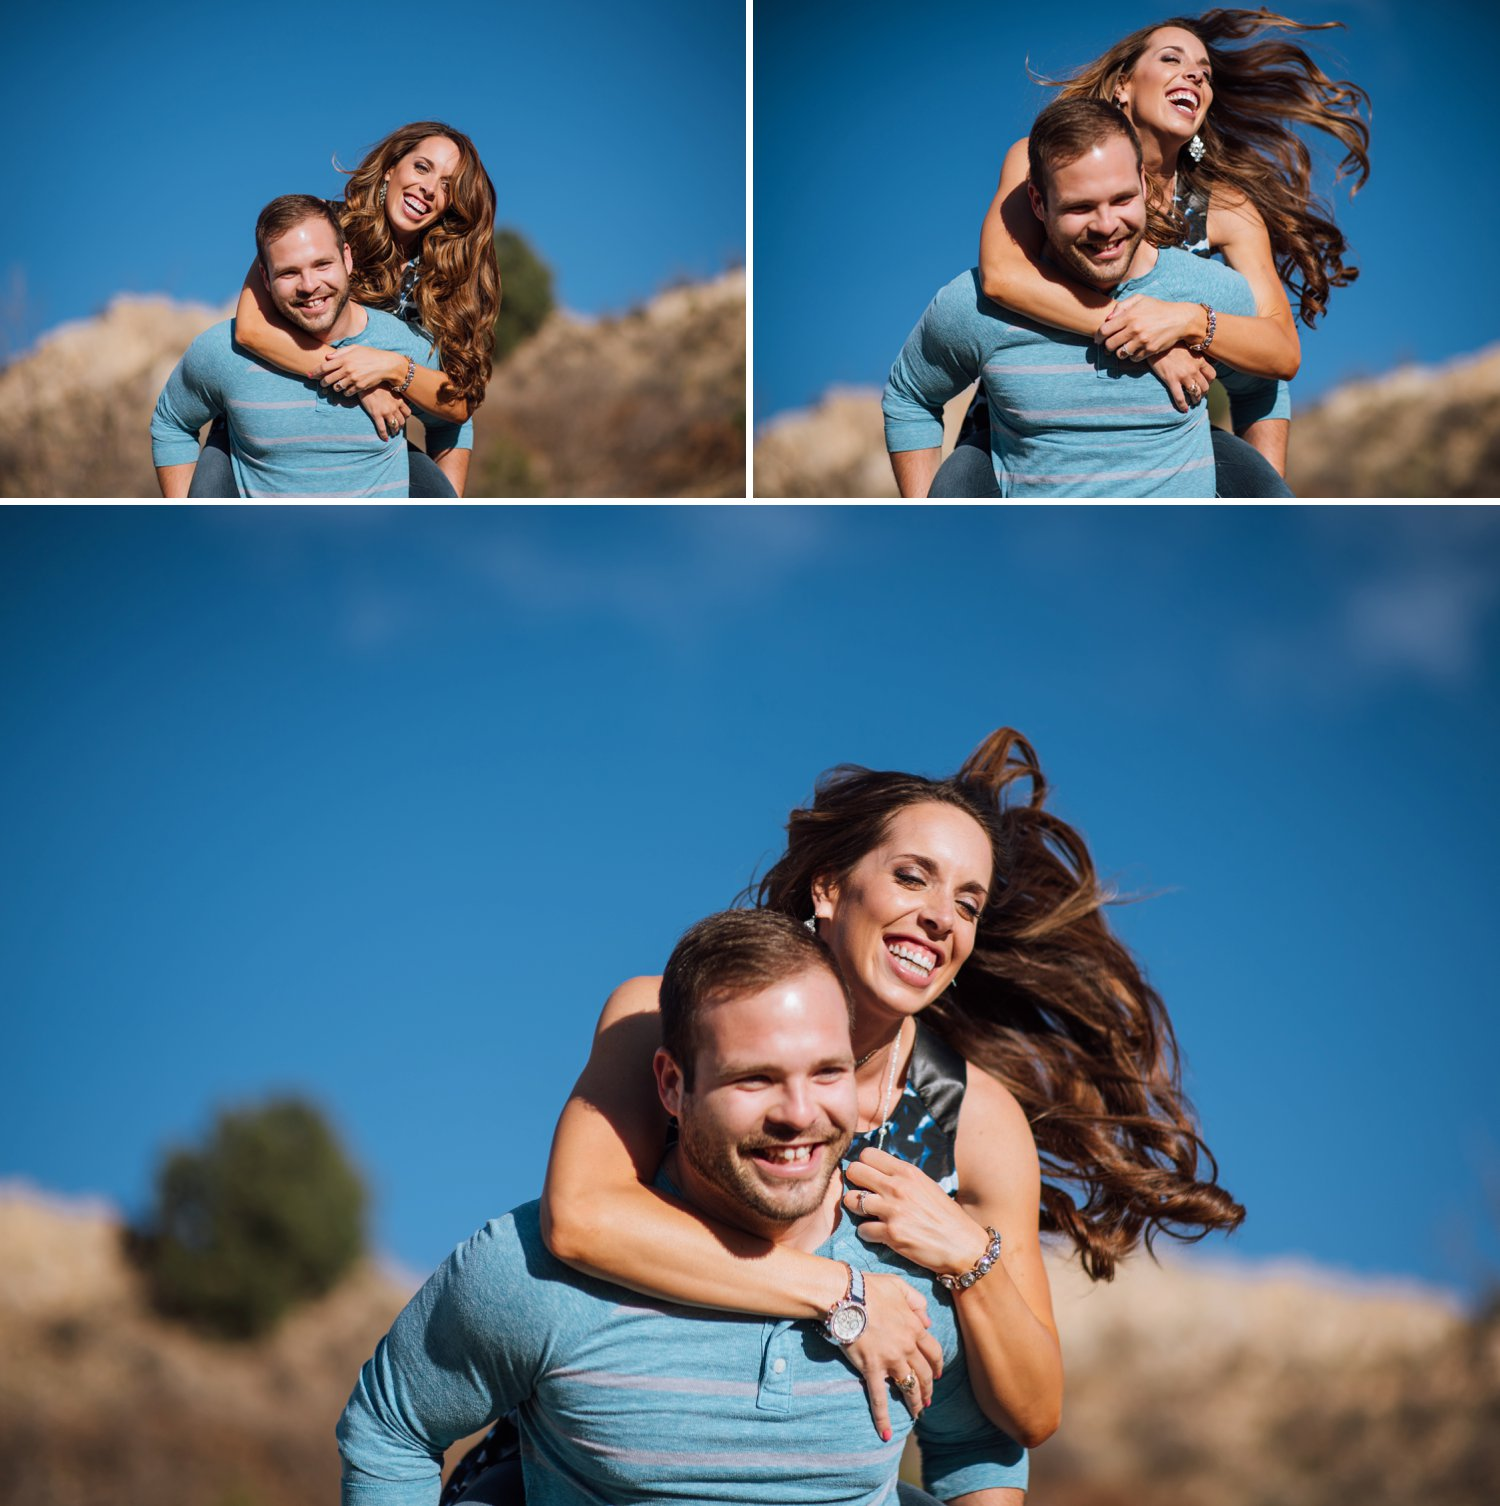 A guy gives his girlfriend a piggyback and runs through a field. Piggyback engagement photo adventure by Maddie Mae Photography.